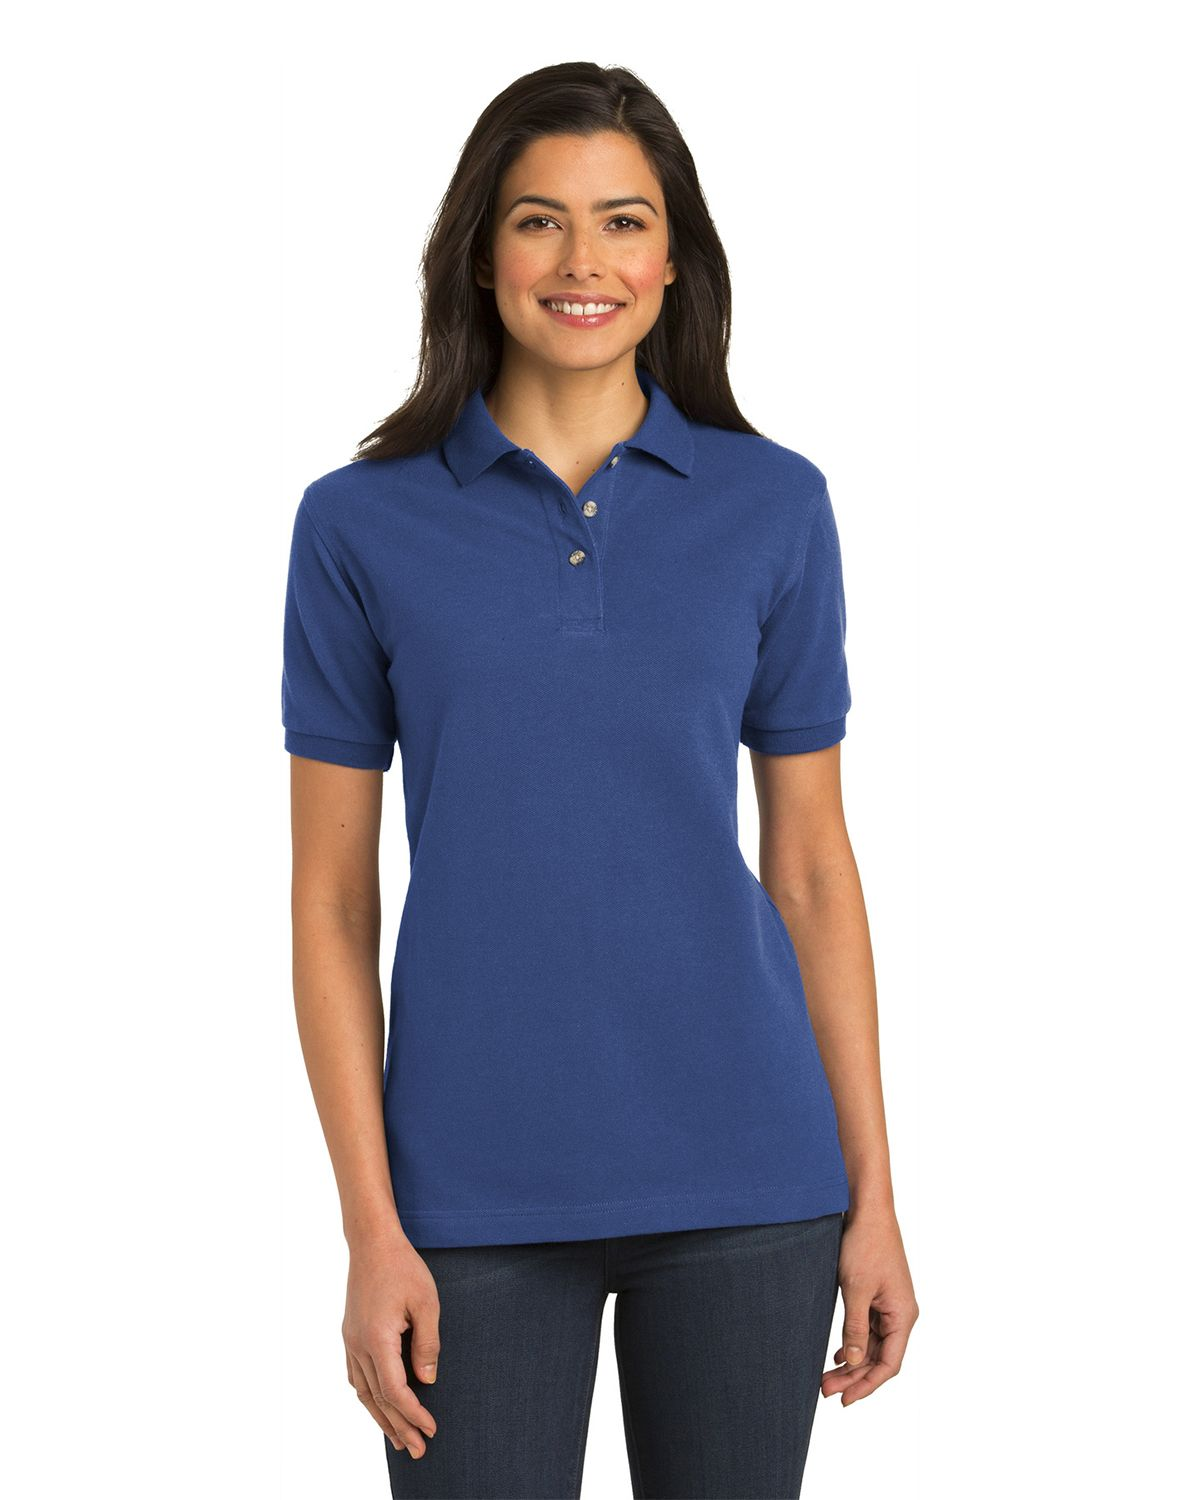 Port Authority L420 Womens Pique Knit Polo - Royal - XS